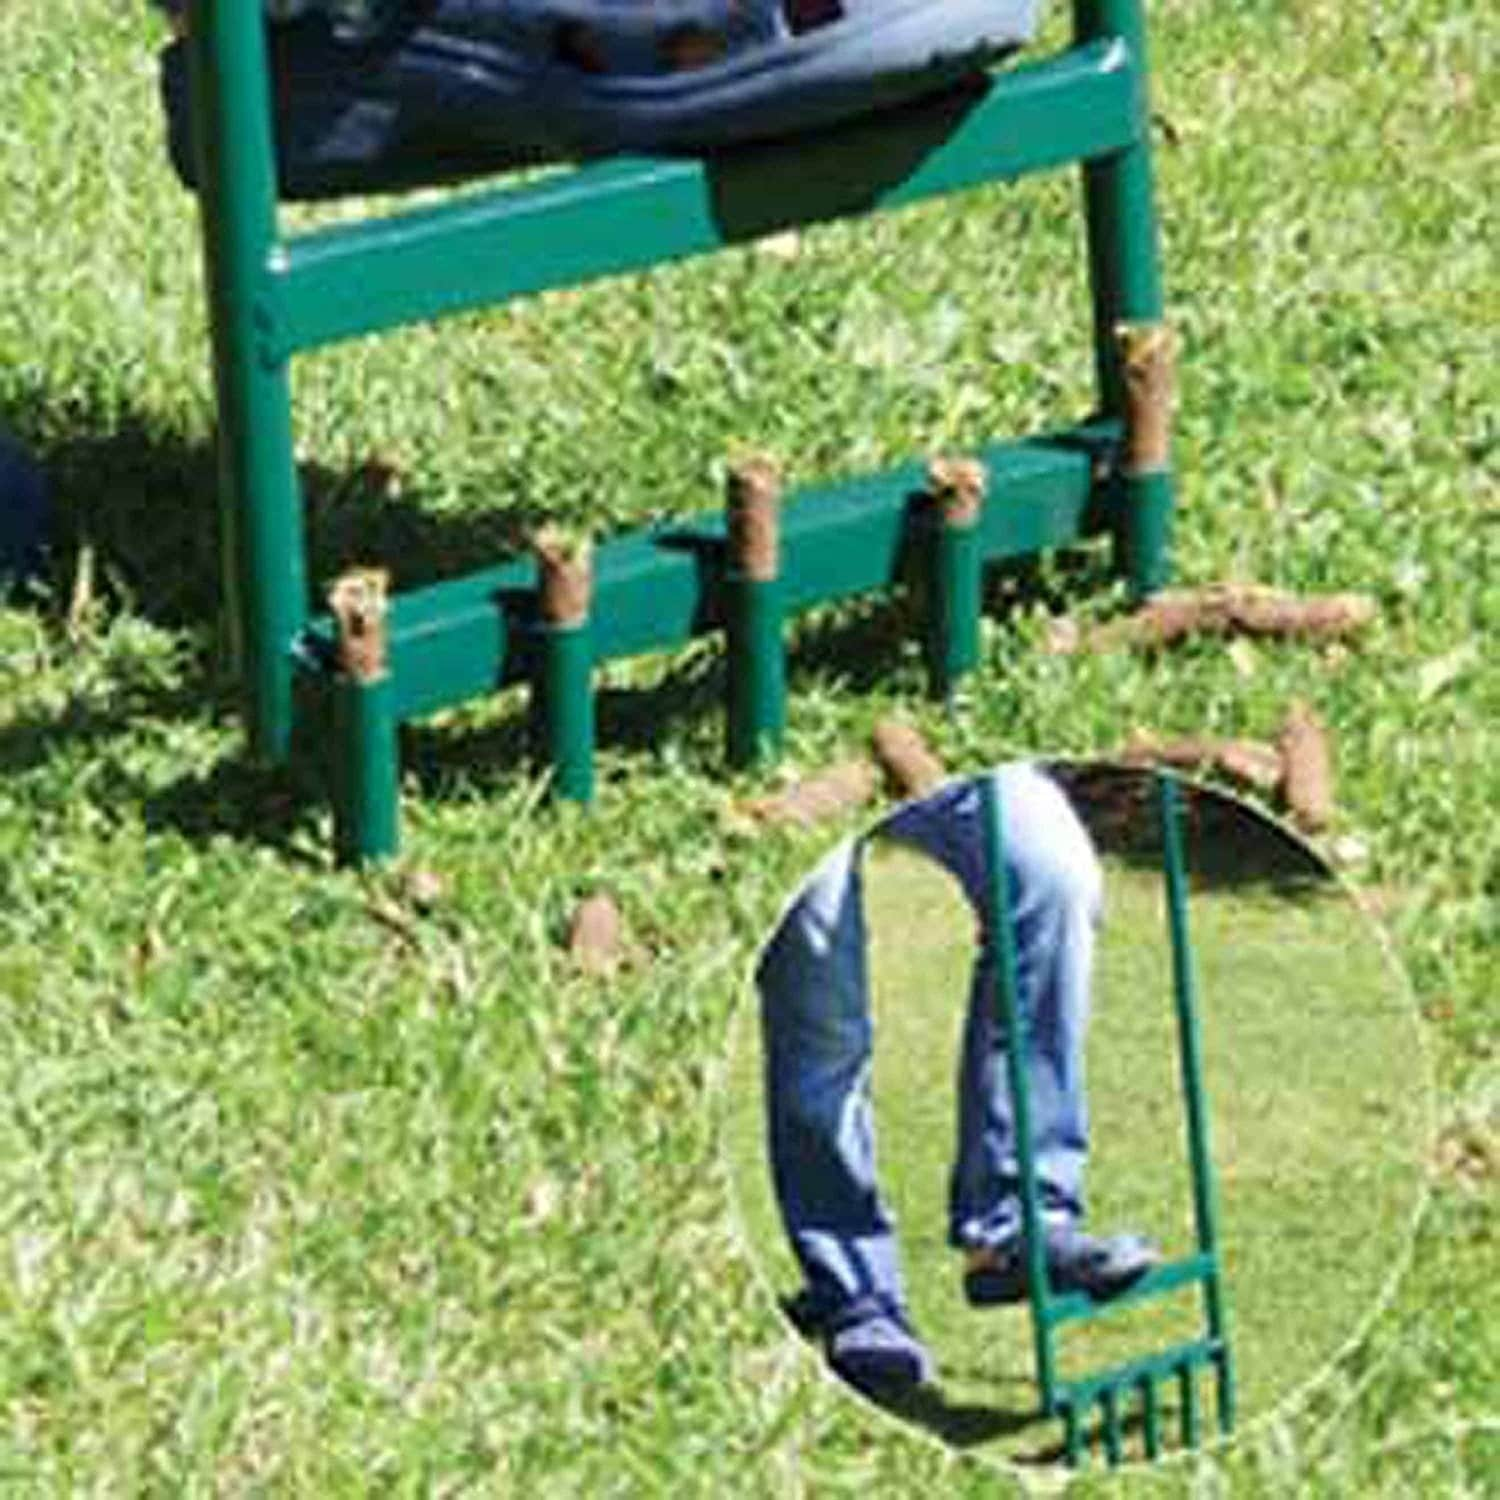 ALEKO Steel Hollow Tine Garden Green Lawn Aerator With 5 Tines   Free  Shipping On Orders Over $45   Overstock   26508299